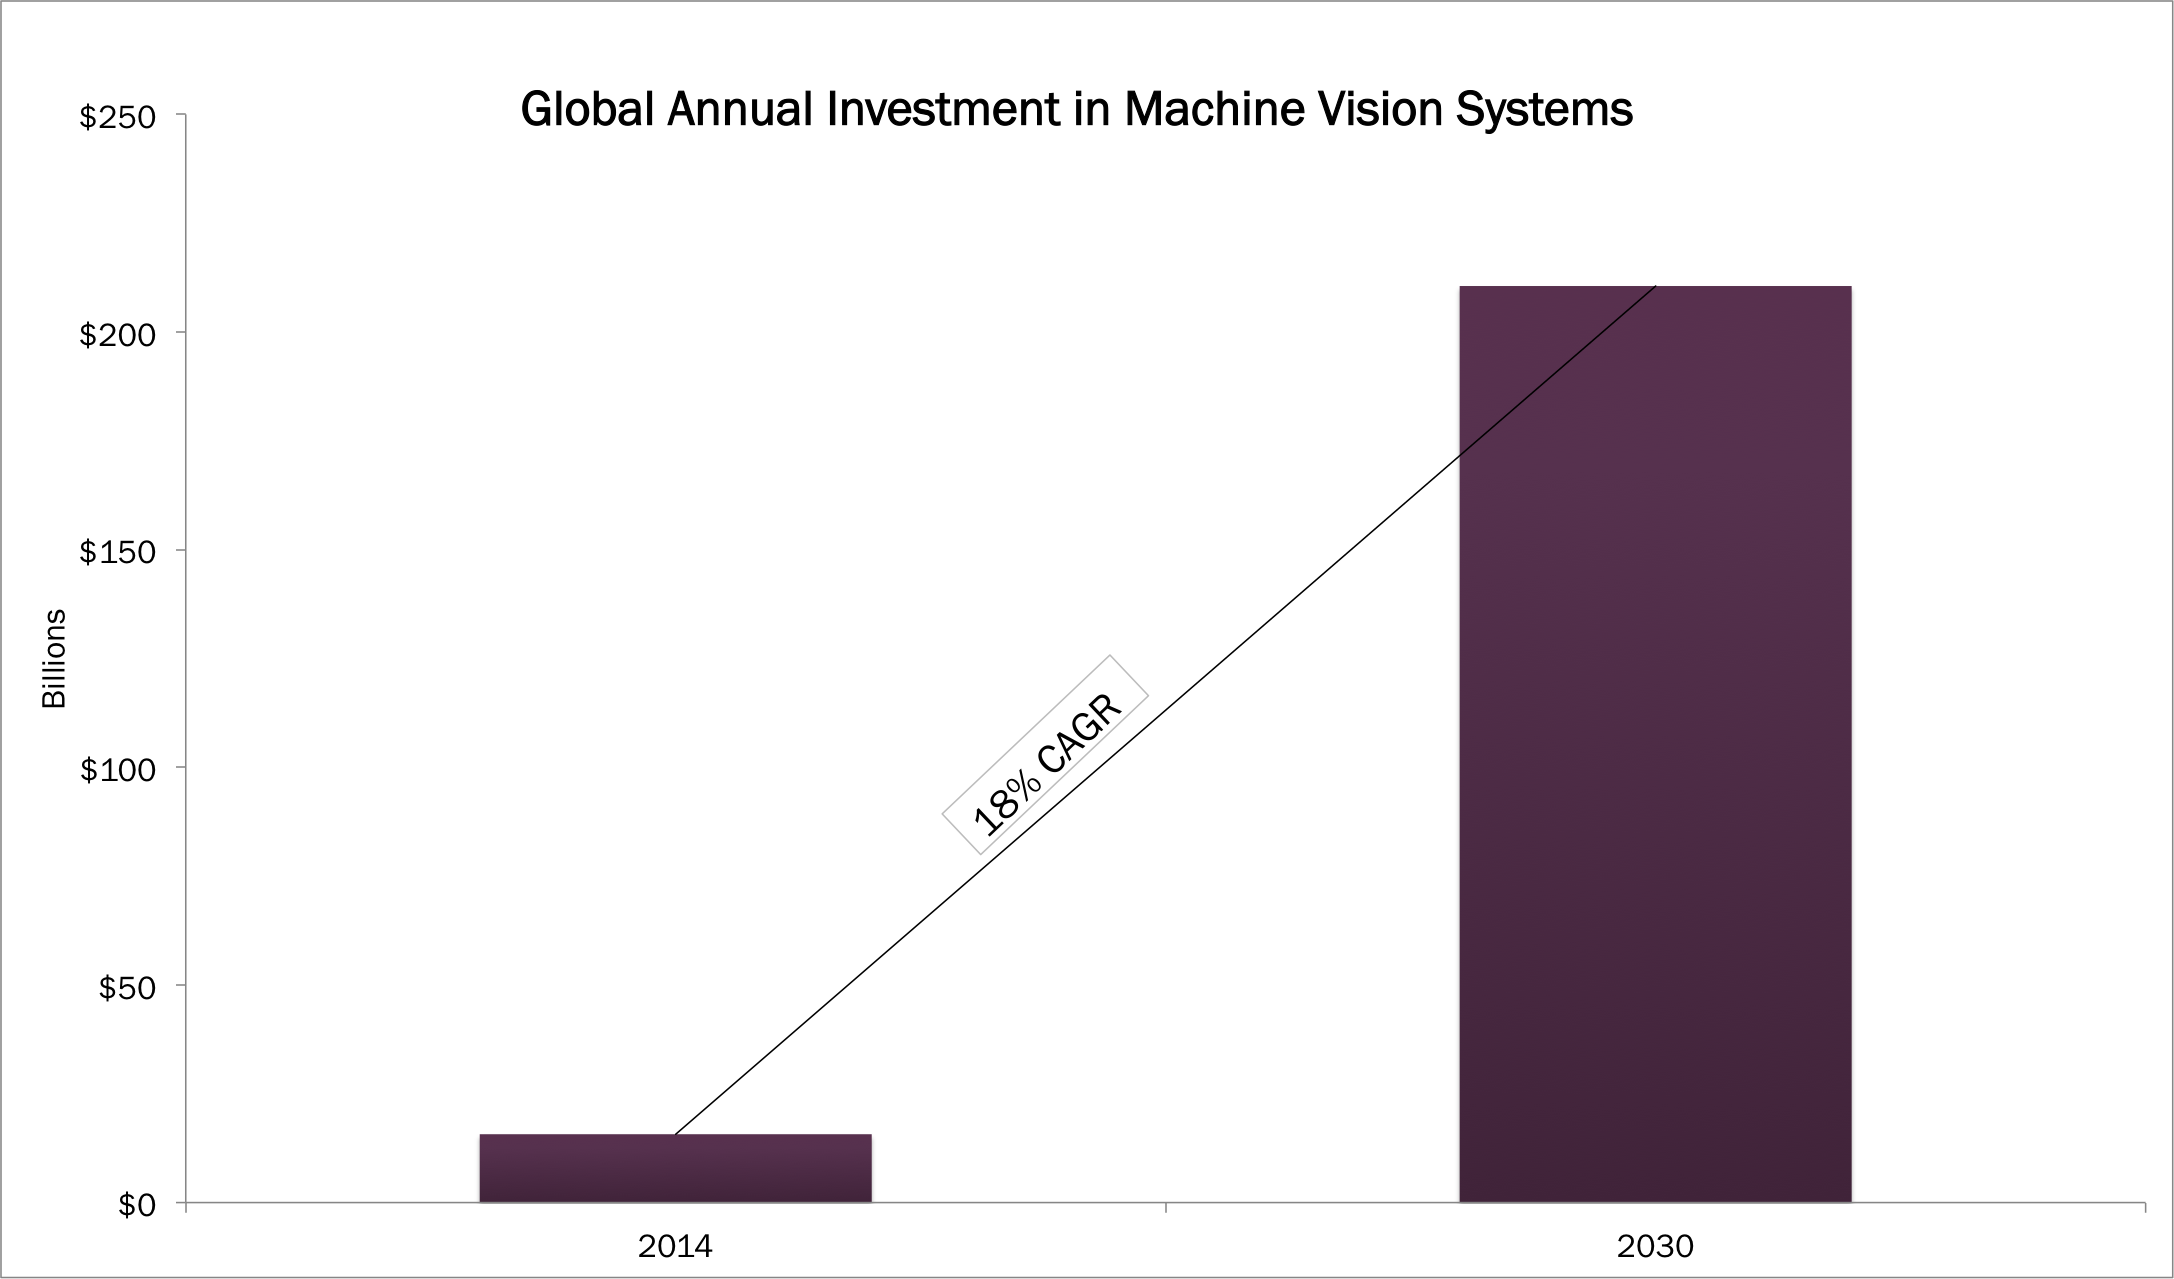 machine vision systems, ARK Invest, retail robots, industrial innovation, Lowe's, robotics, automation